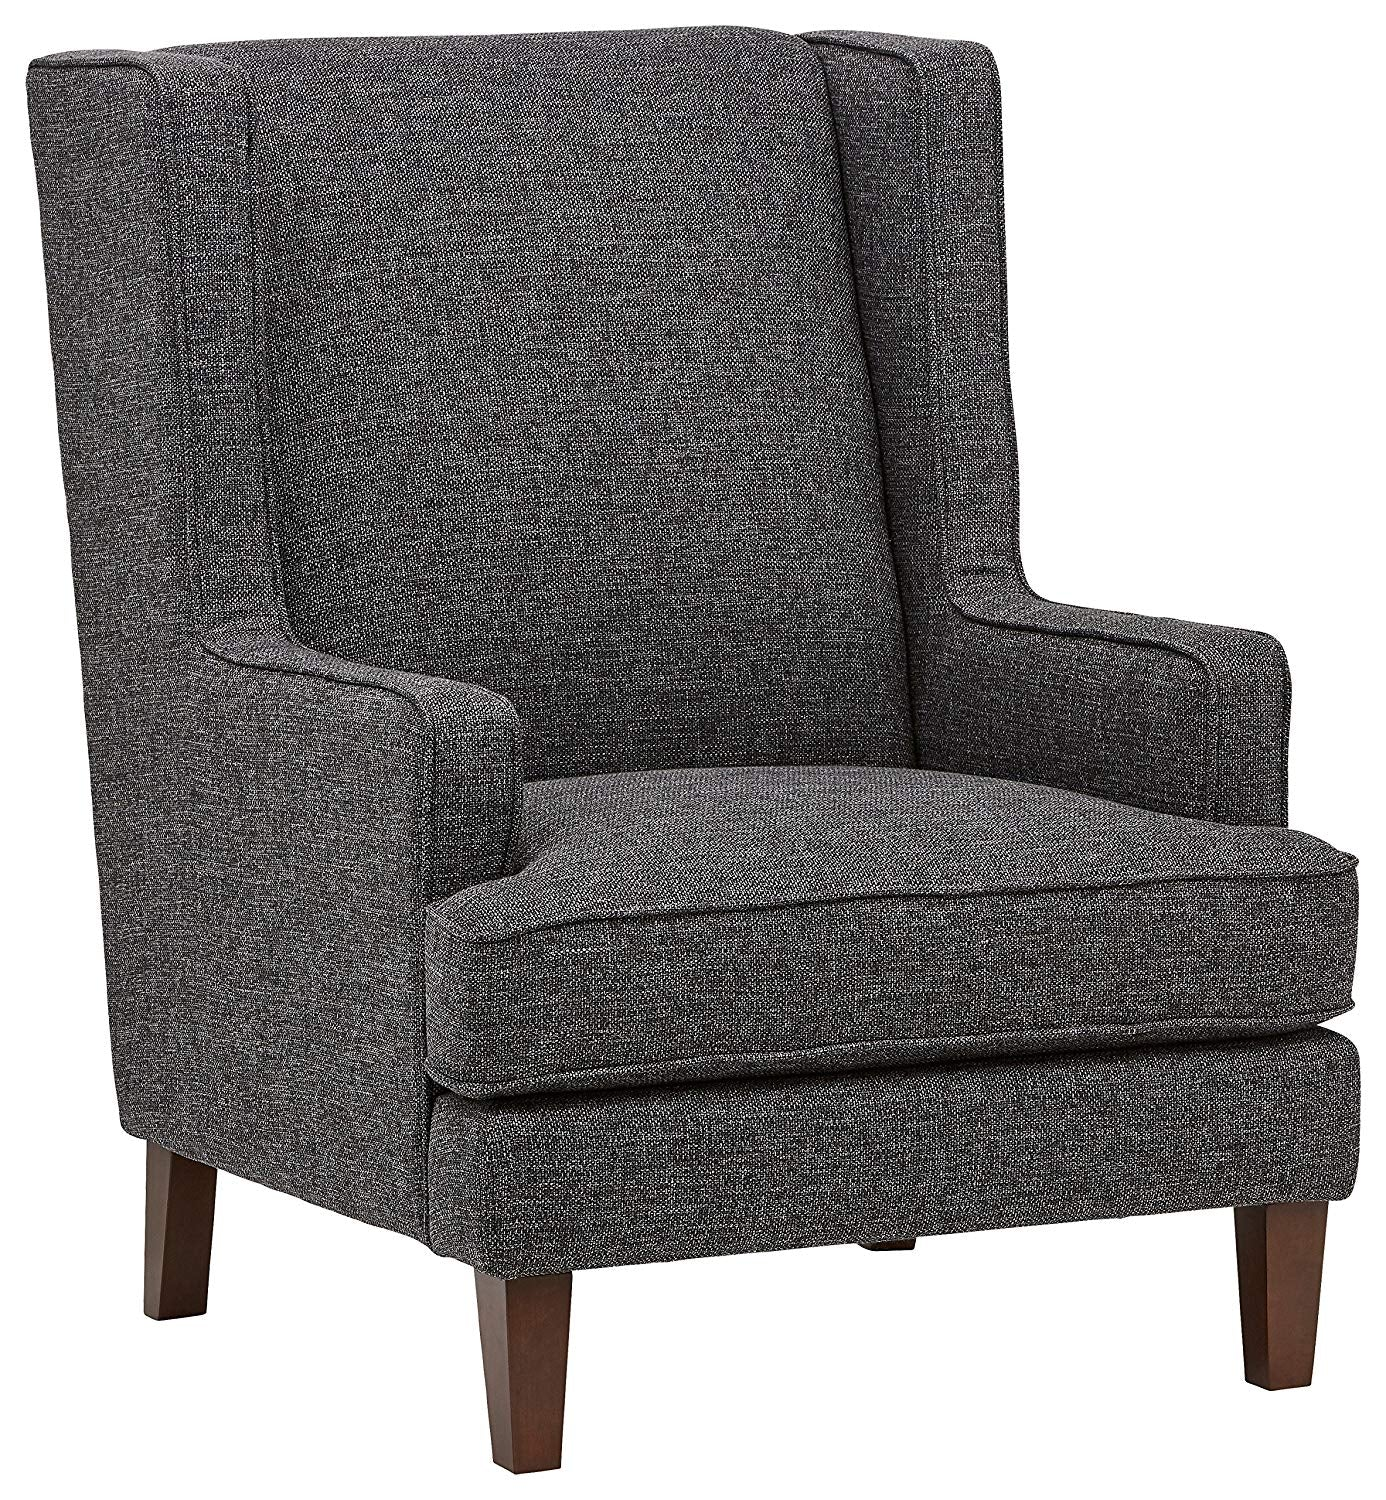 "Stone & Beam Highland Modern Wingback Living Room Accent Chair, 31.9""W, Caviar"